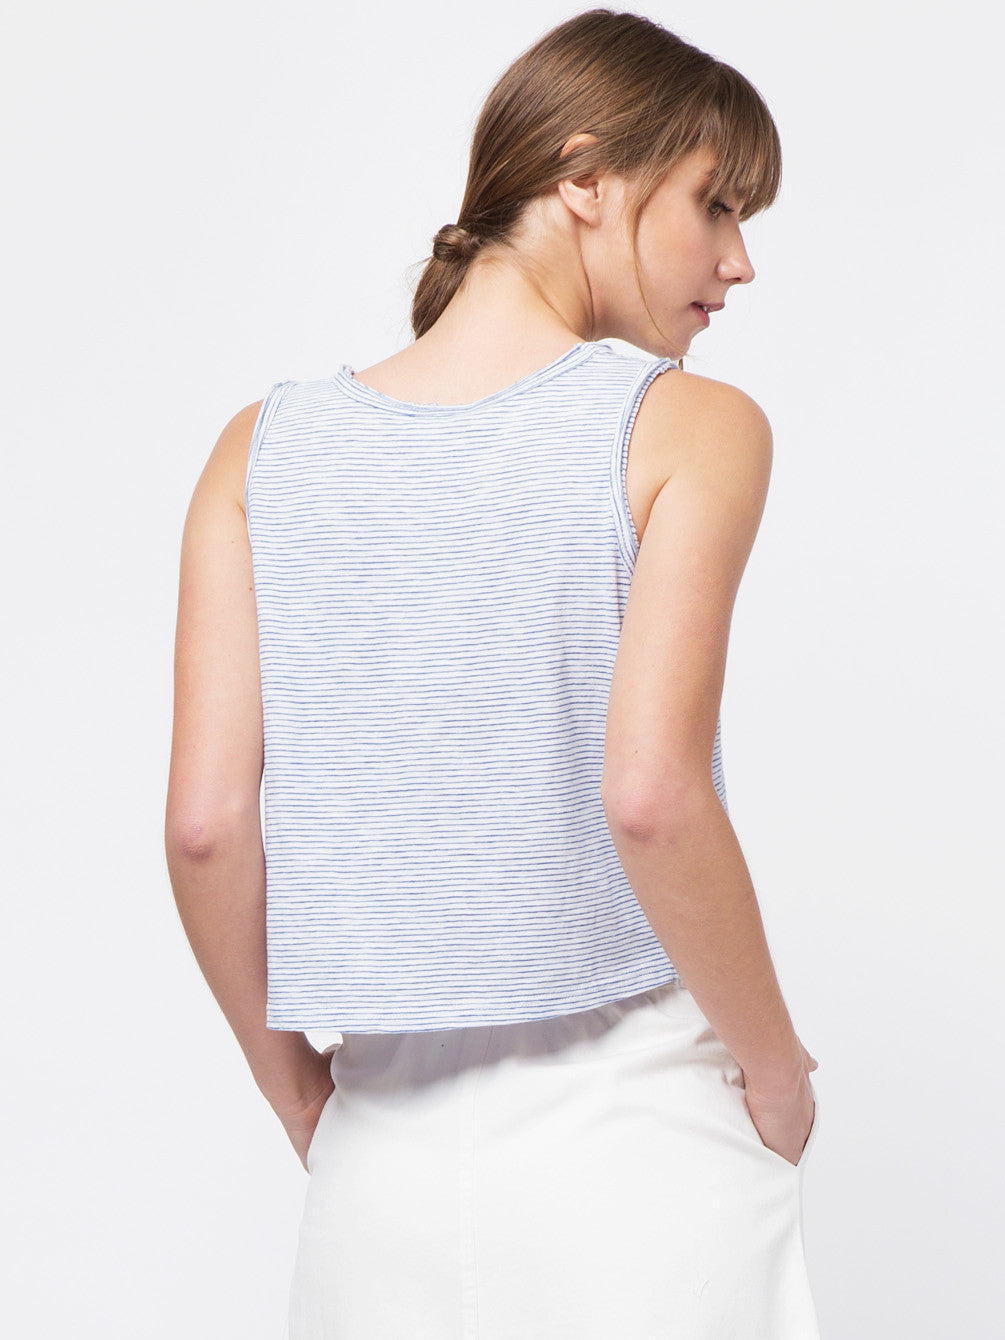 The 'Zephyr' Tank Top